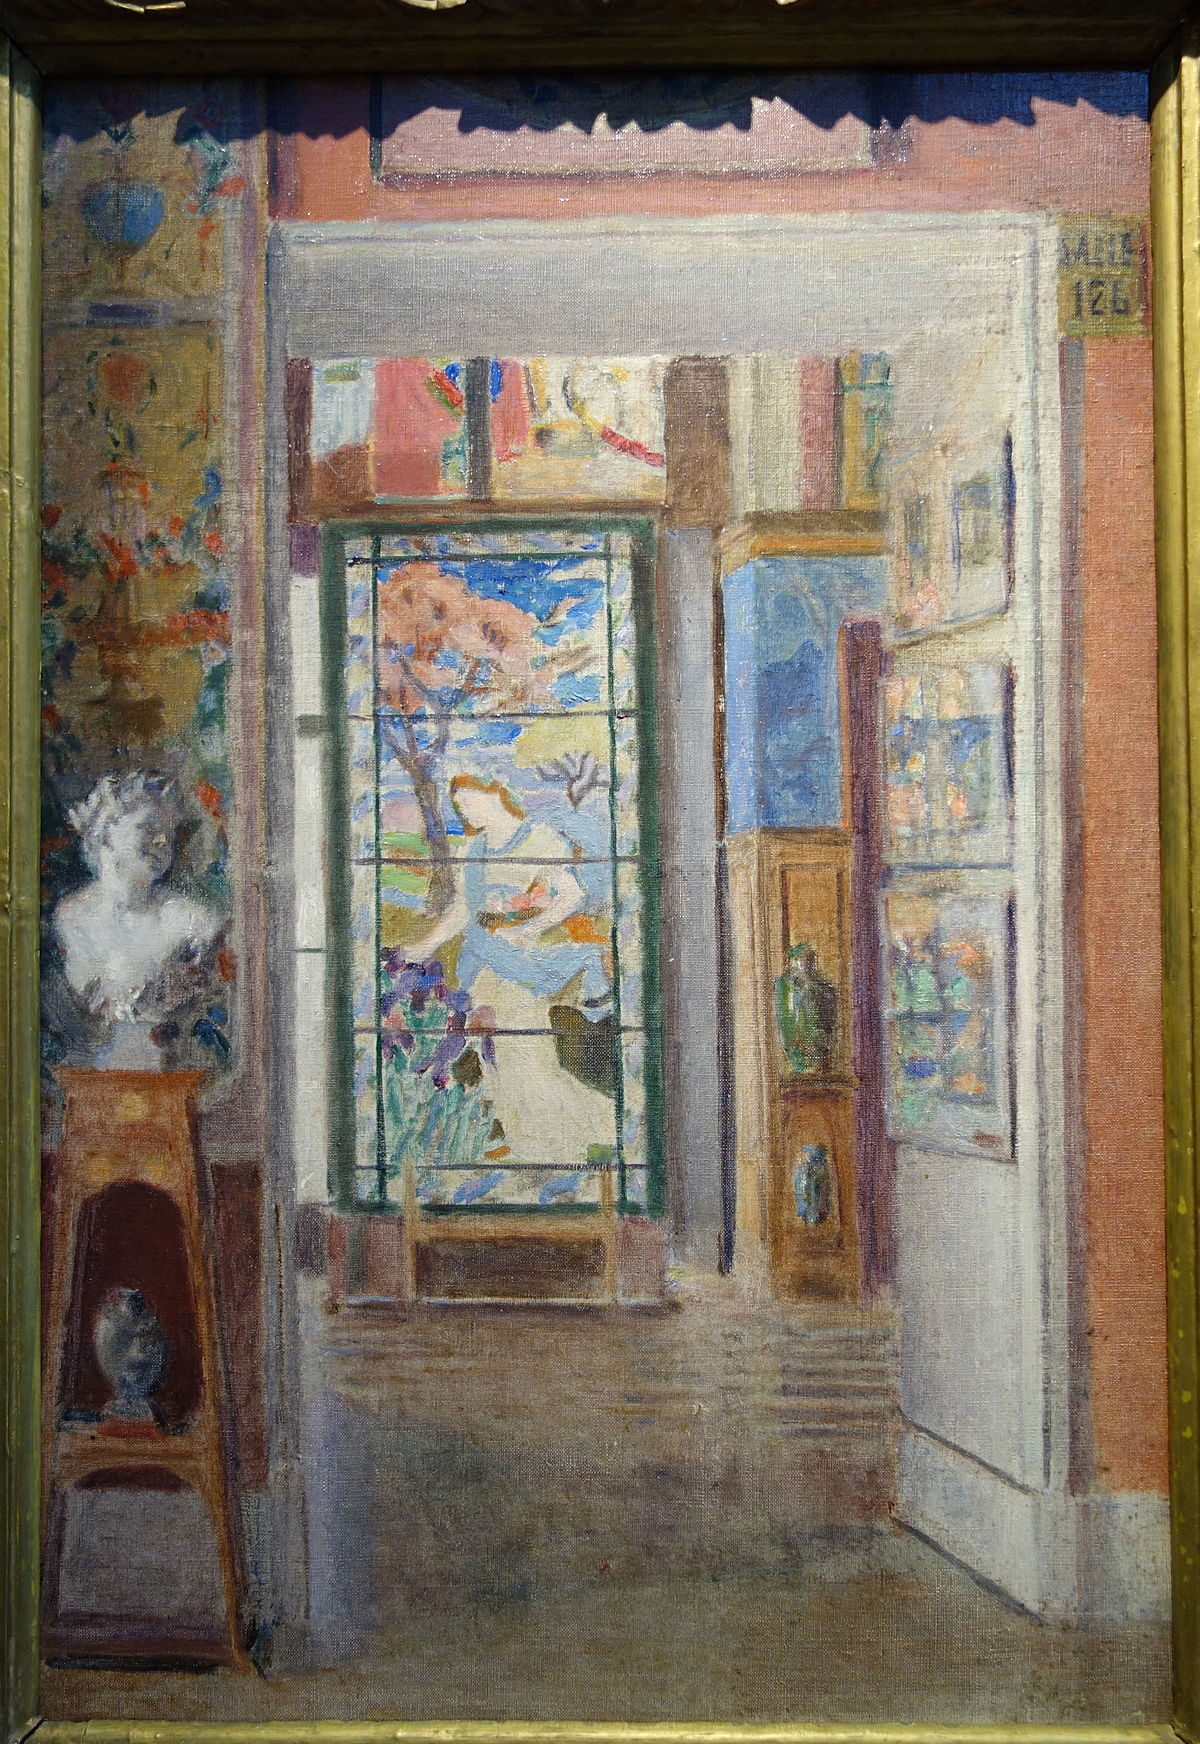 Arte Moderne by Eleanor Norcross, c. 1920, oil on canvas - Fitchburg Art Museum - DSC08886.JPG